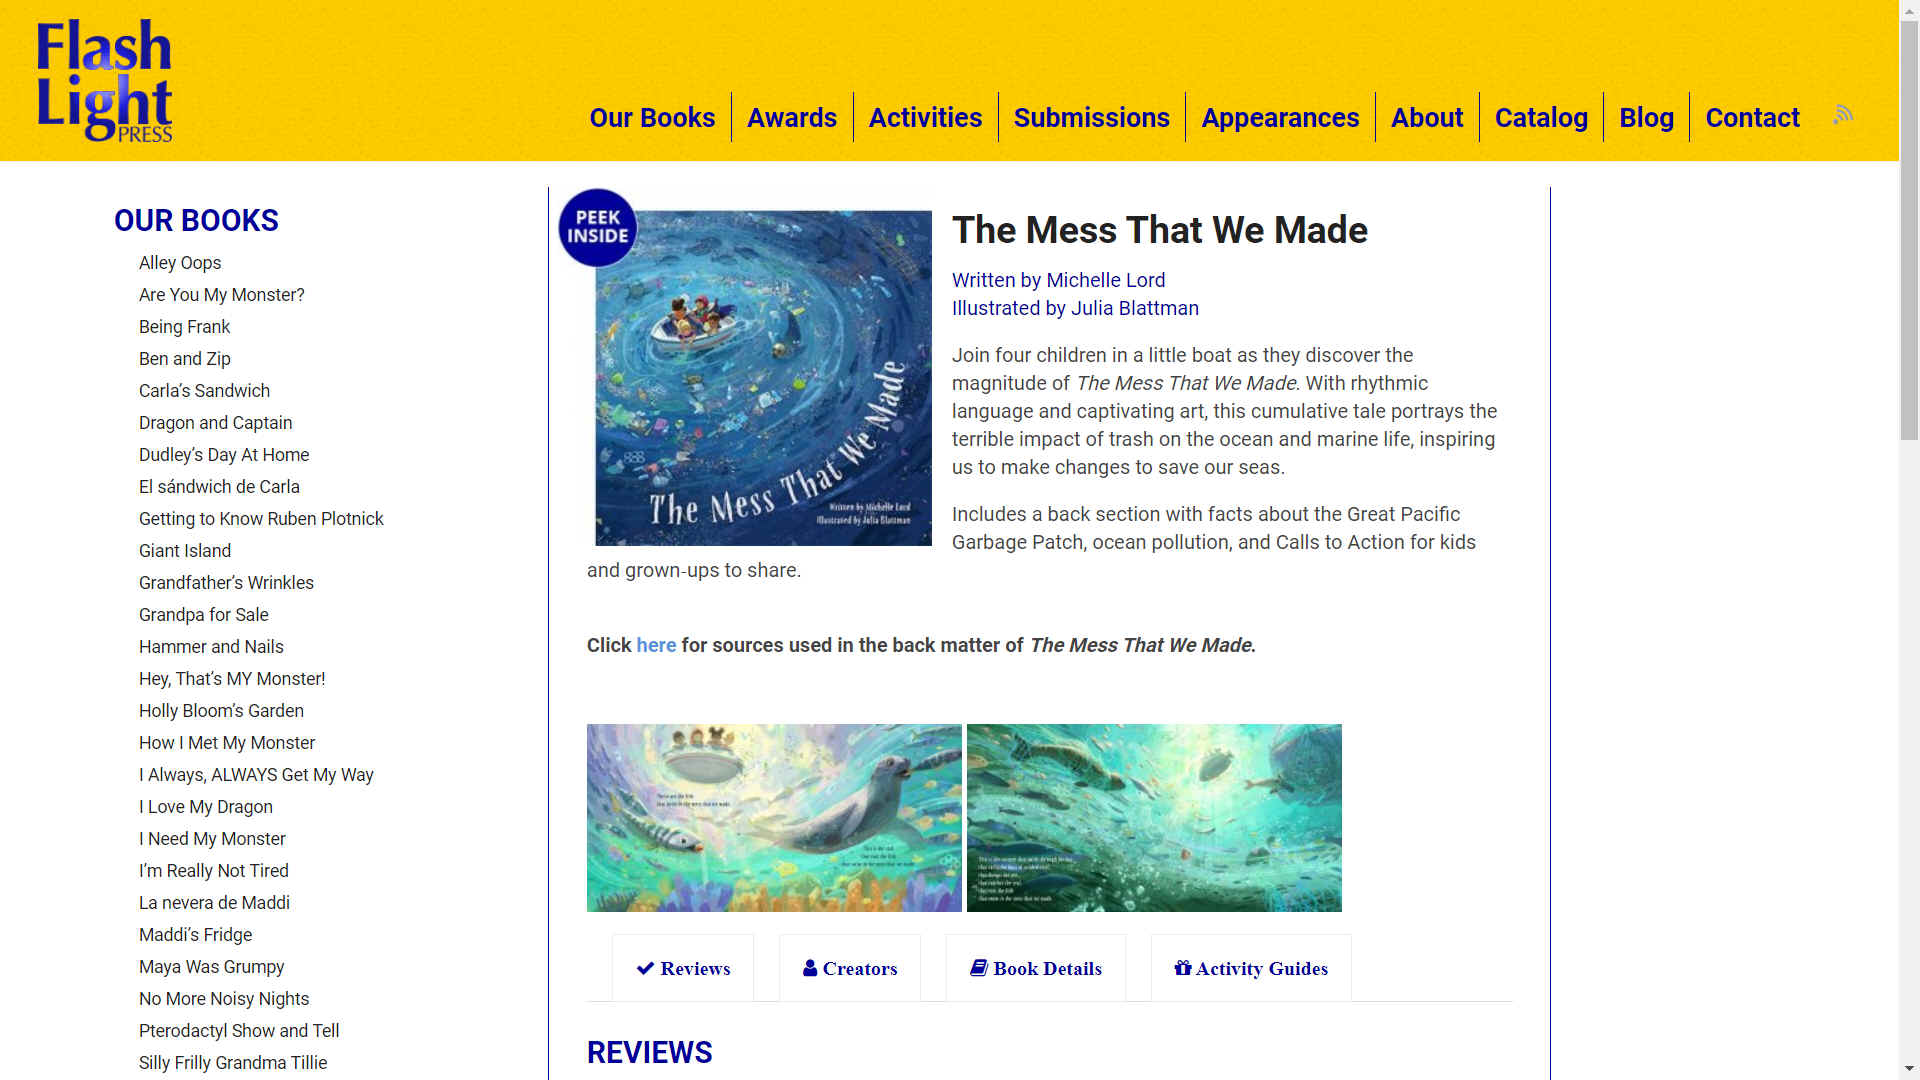 The Mess That We Made - FlashLight Press, Michelle Lord and Julia Blattman